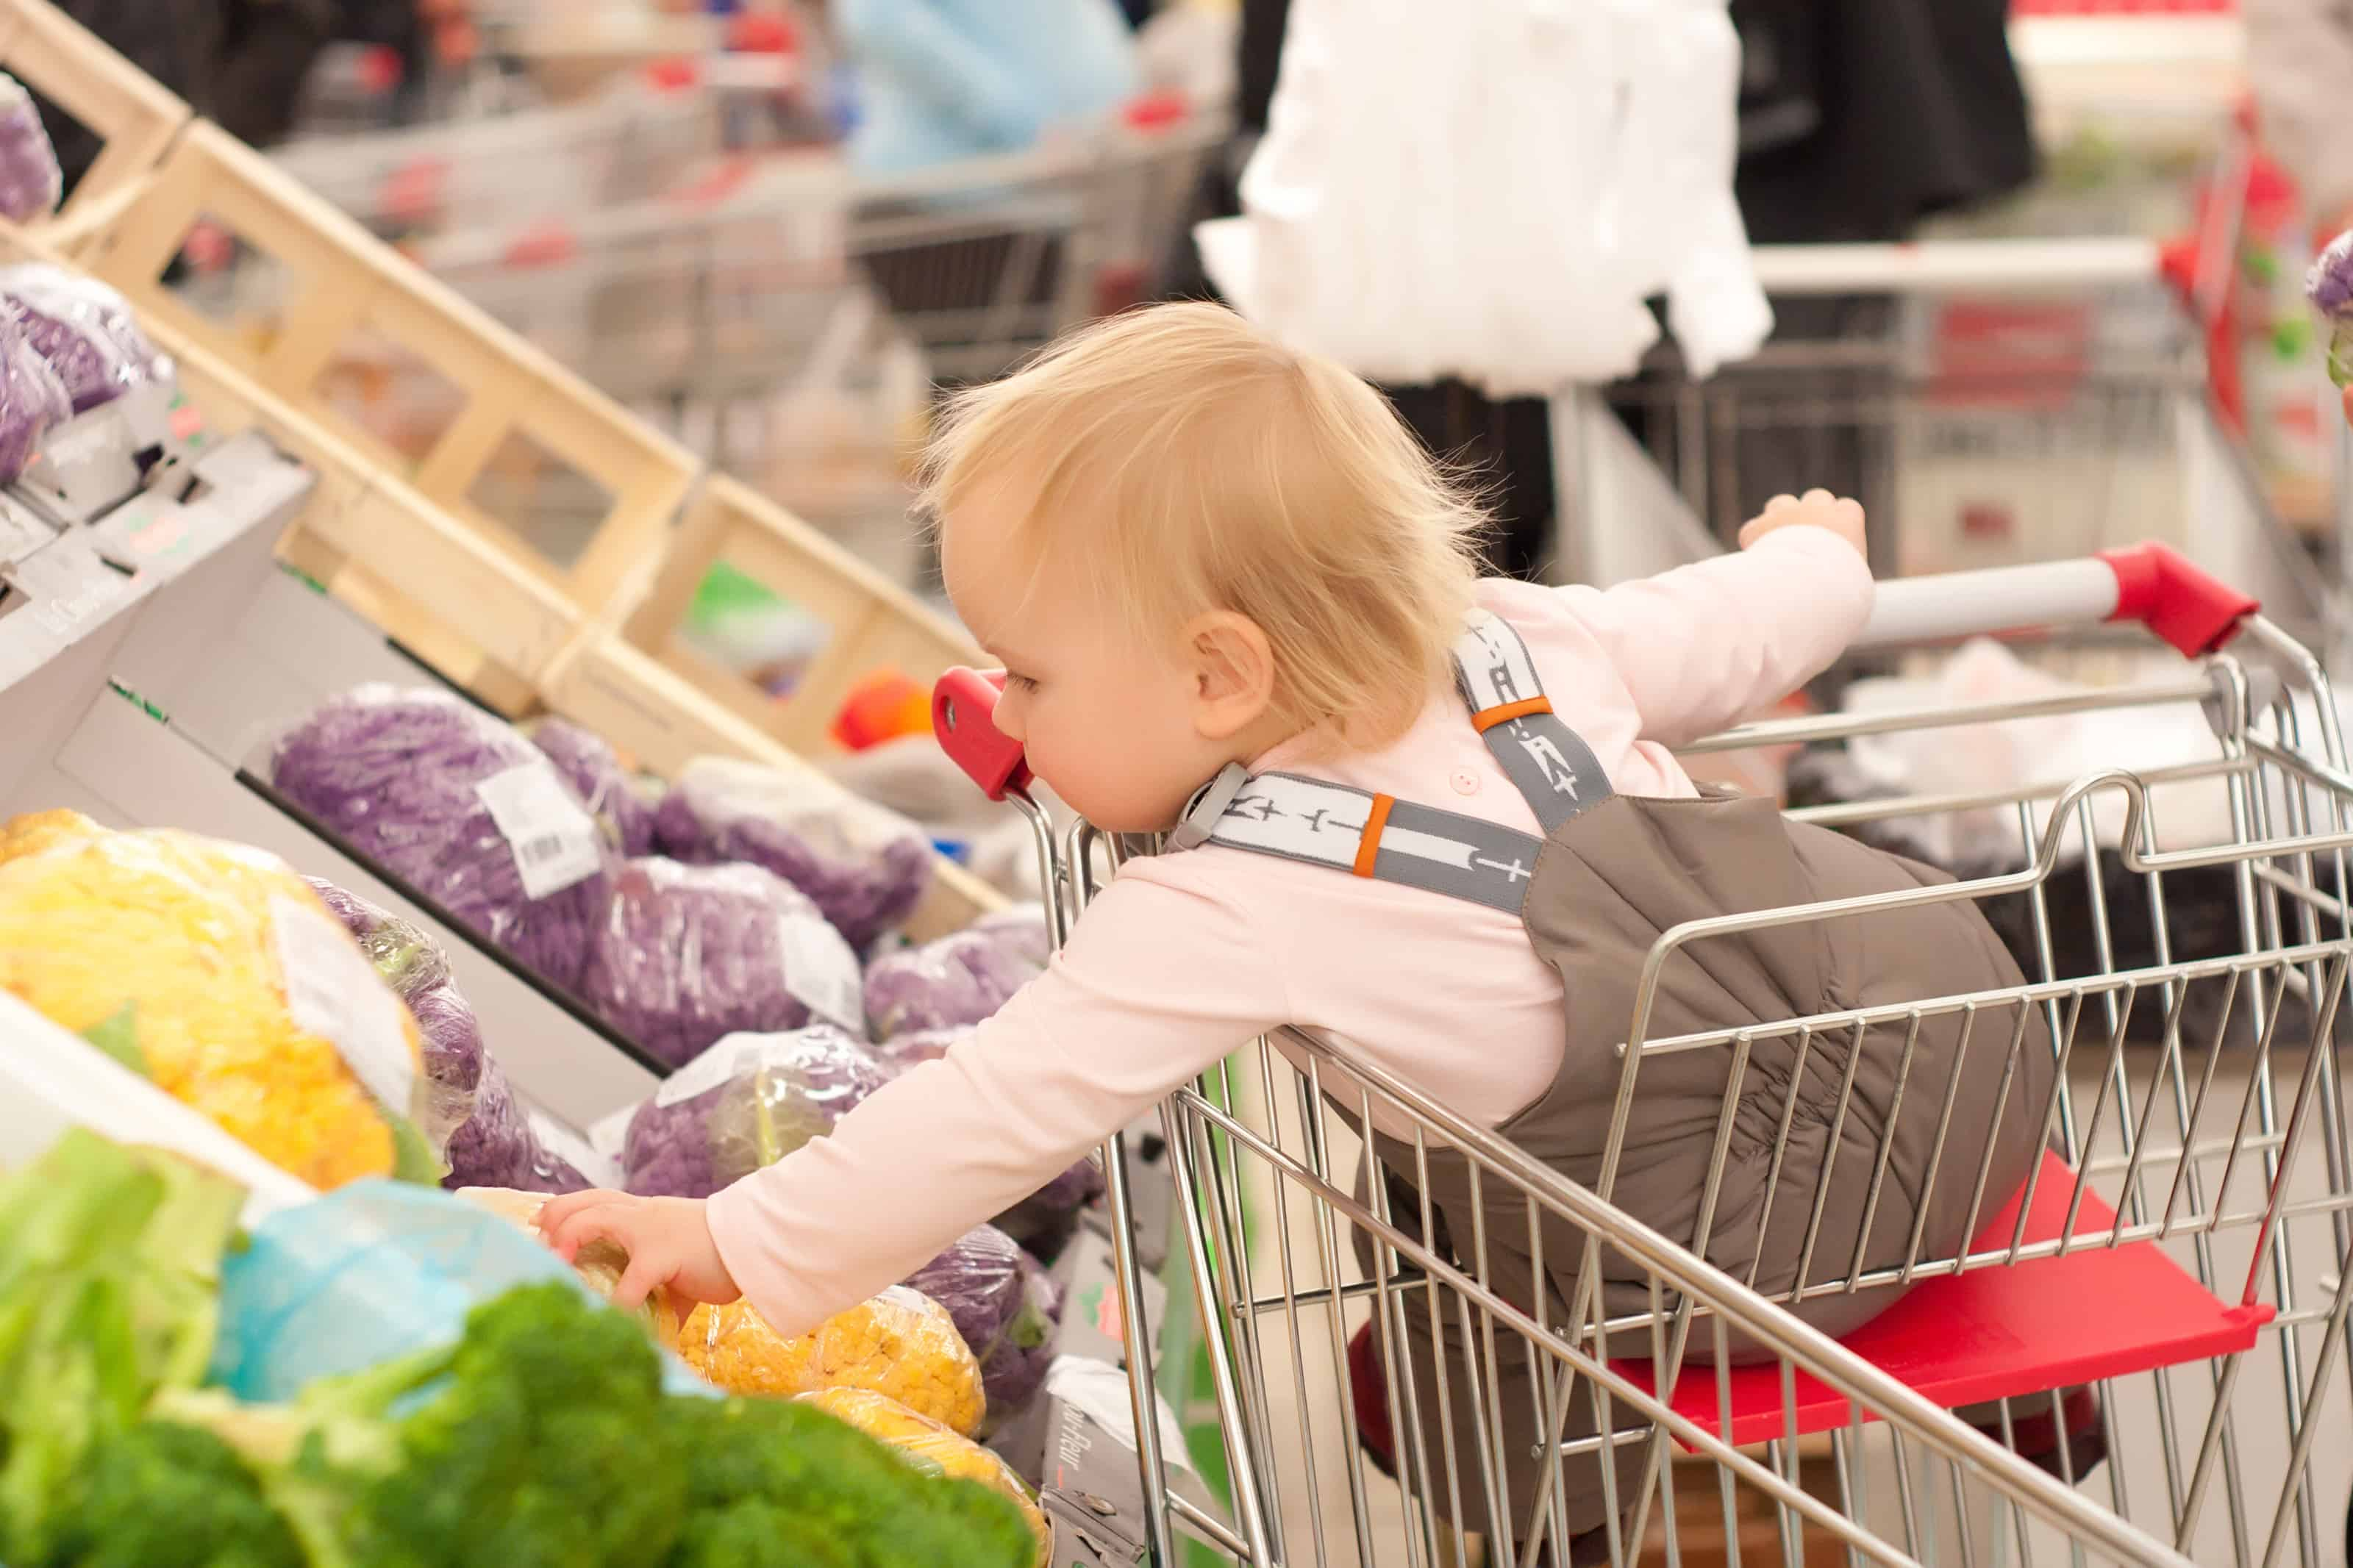 Shopping with little ones can be extremely challenging. When you can't do it online, sometimes you have to suck it up and just take the kids with you. And when you do, you'll want to keep these humorous (and useful) tips in mind. #shoppingwithkidshumor #parentinghumor #shoppingwithbaby #mommycribnotes